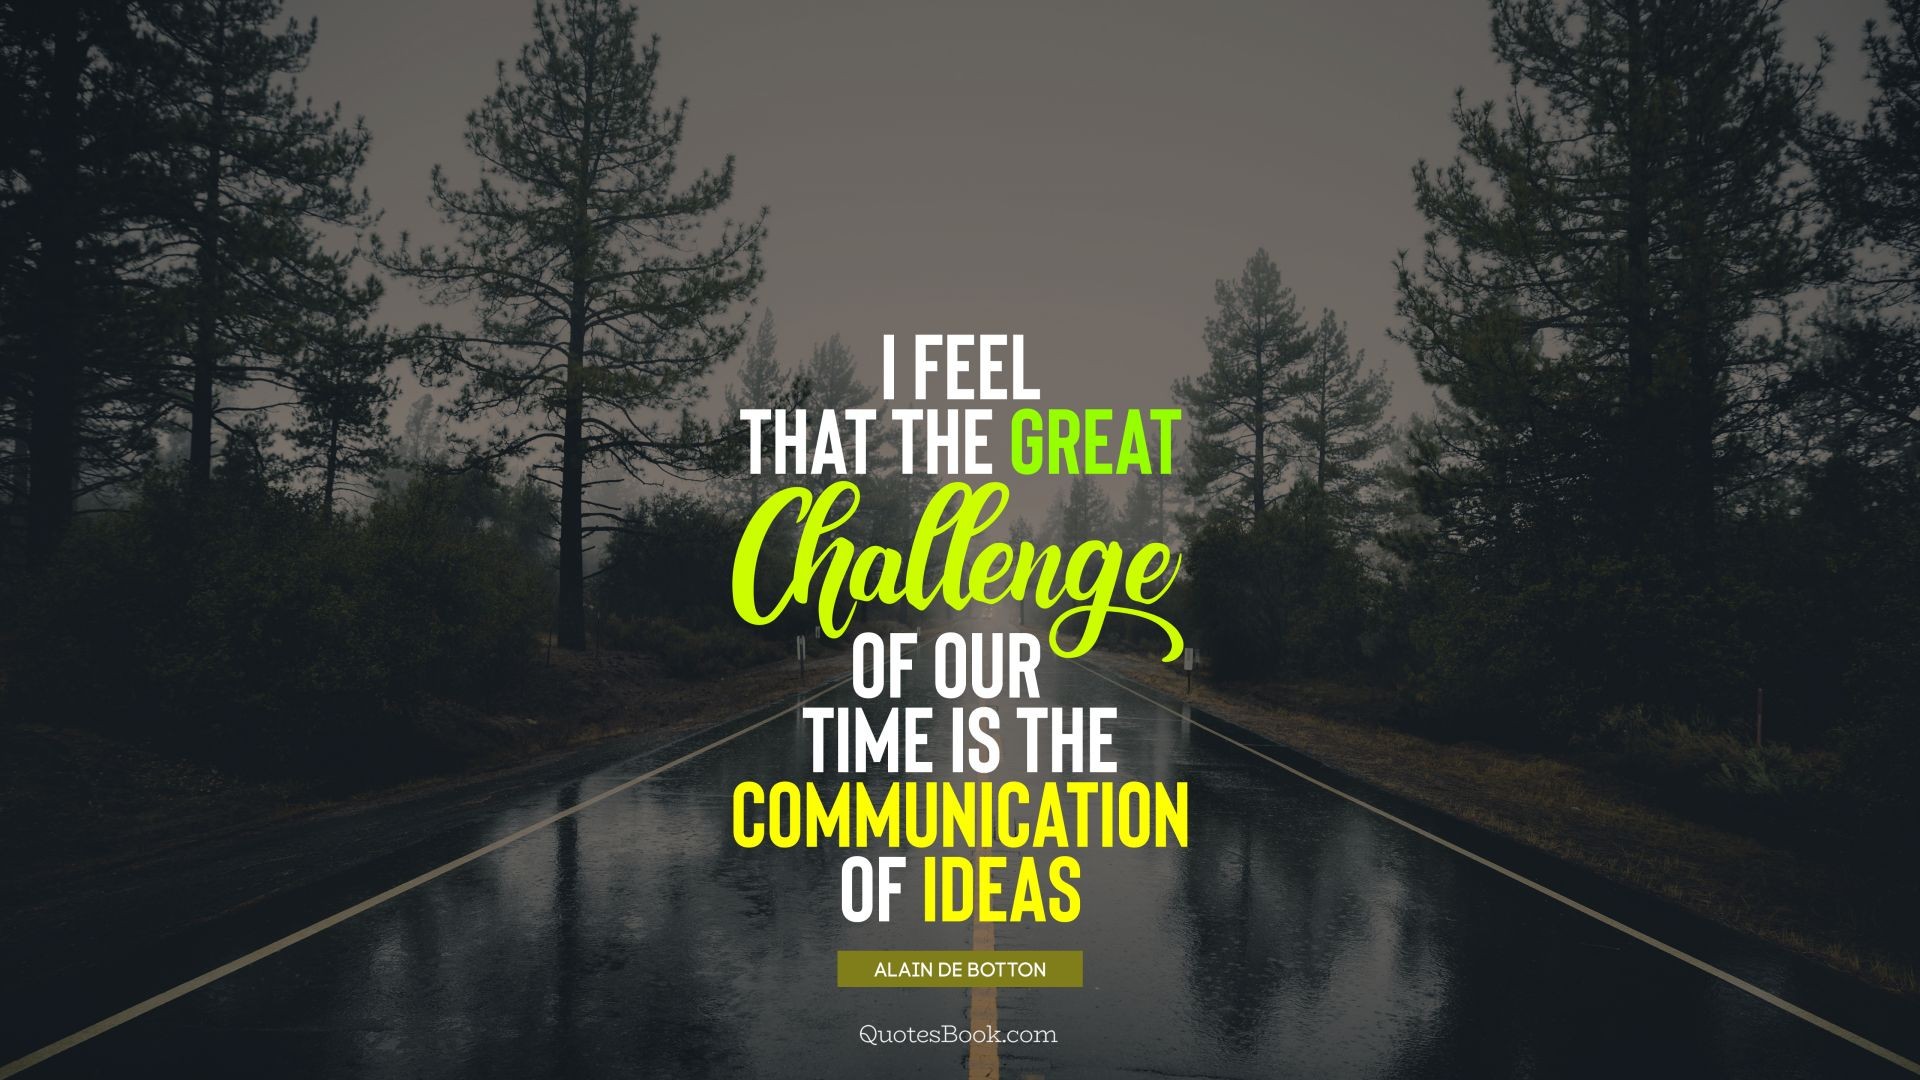 i feel that the great challenge of our time is the communication